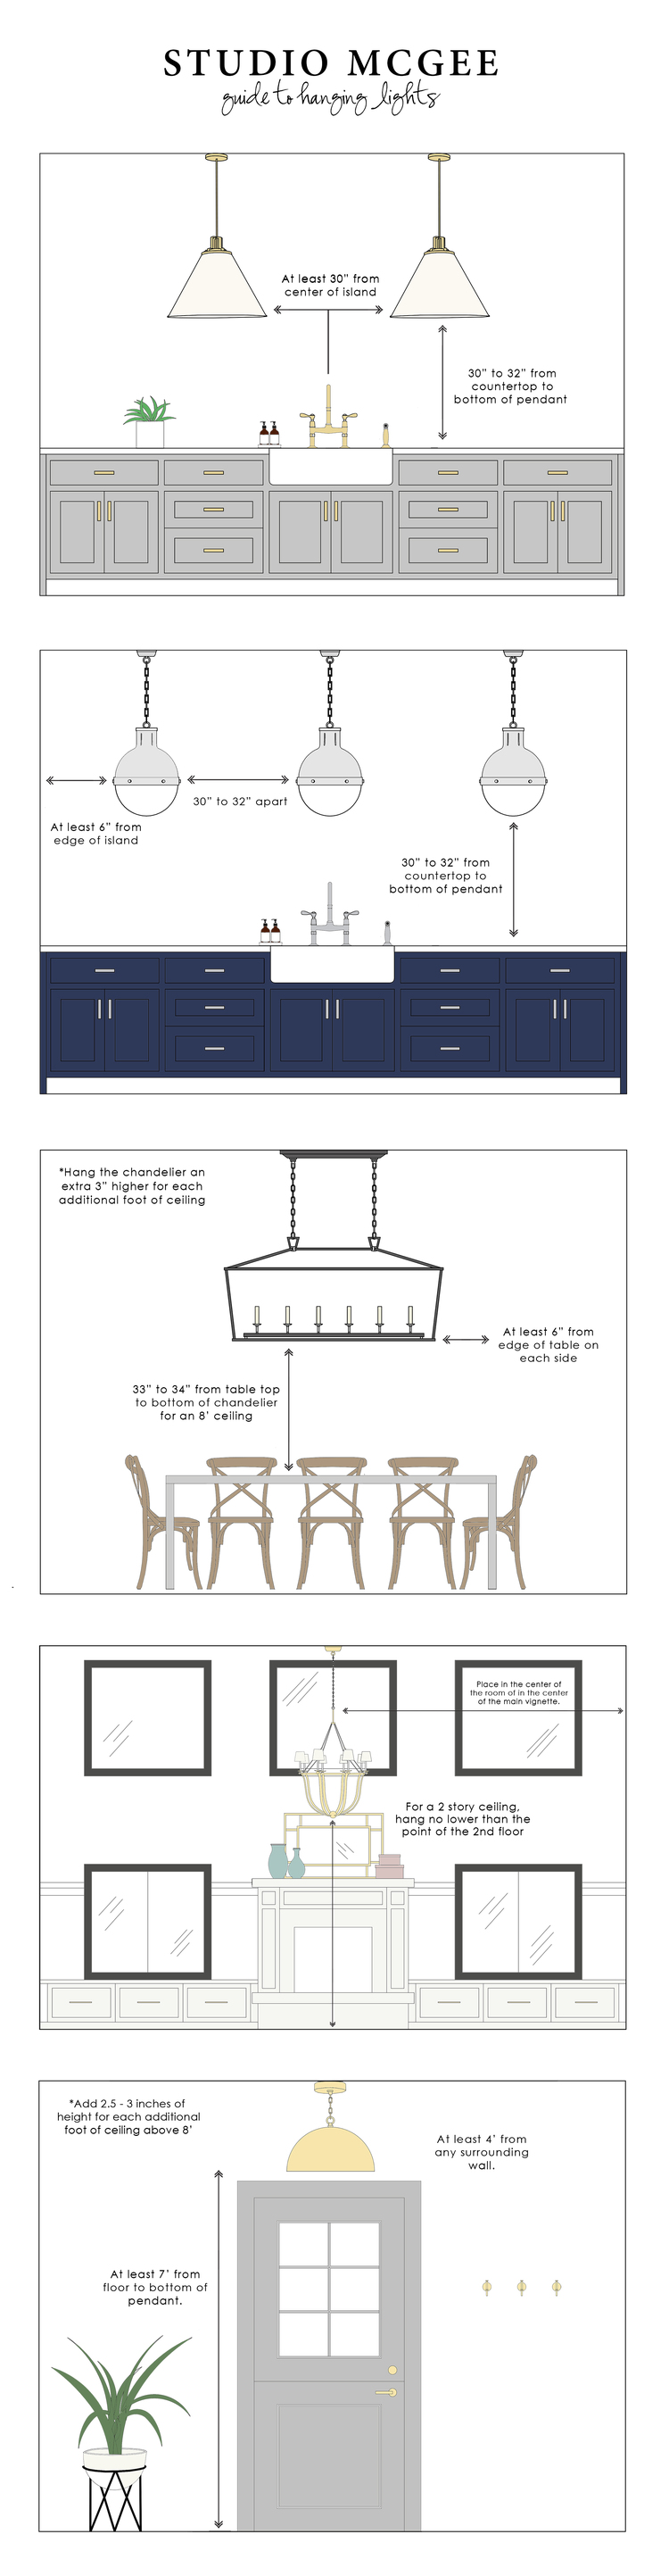 Studio McGees Guide To Hanging Lights STUDIO MCGEE - Light above kitchen table height